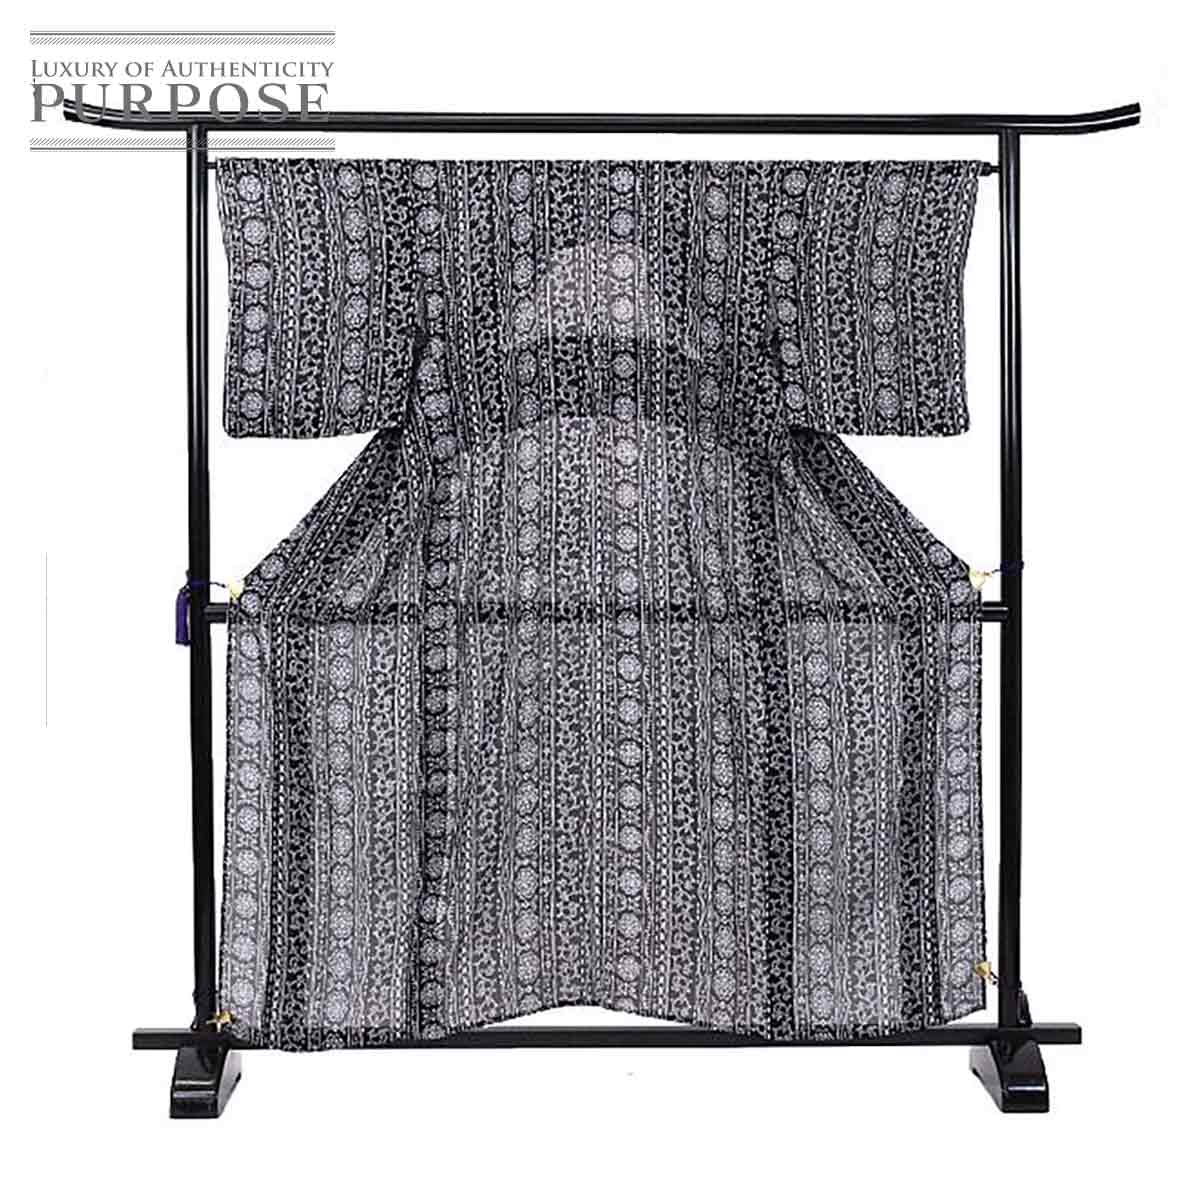 Recycling Lady's of the fine pattern summer unlined clothes silk shrinkage  printed cotton black printed cotton ethnic cool pure silk fabrics kimono